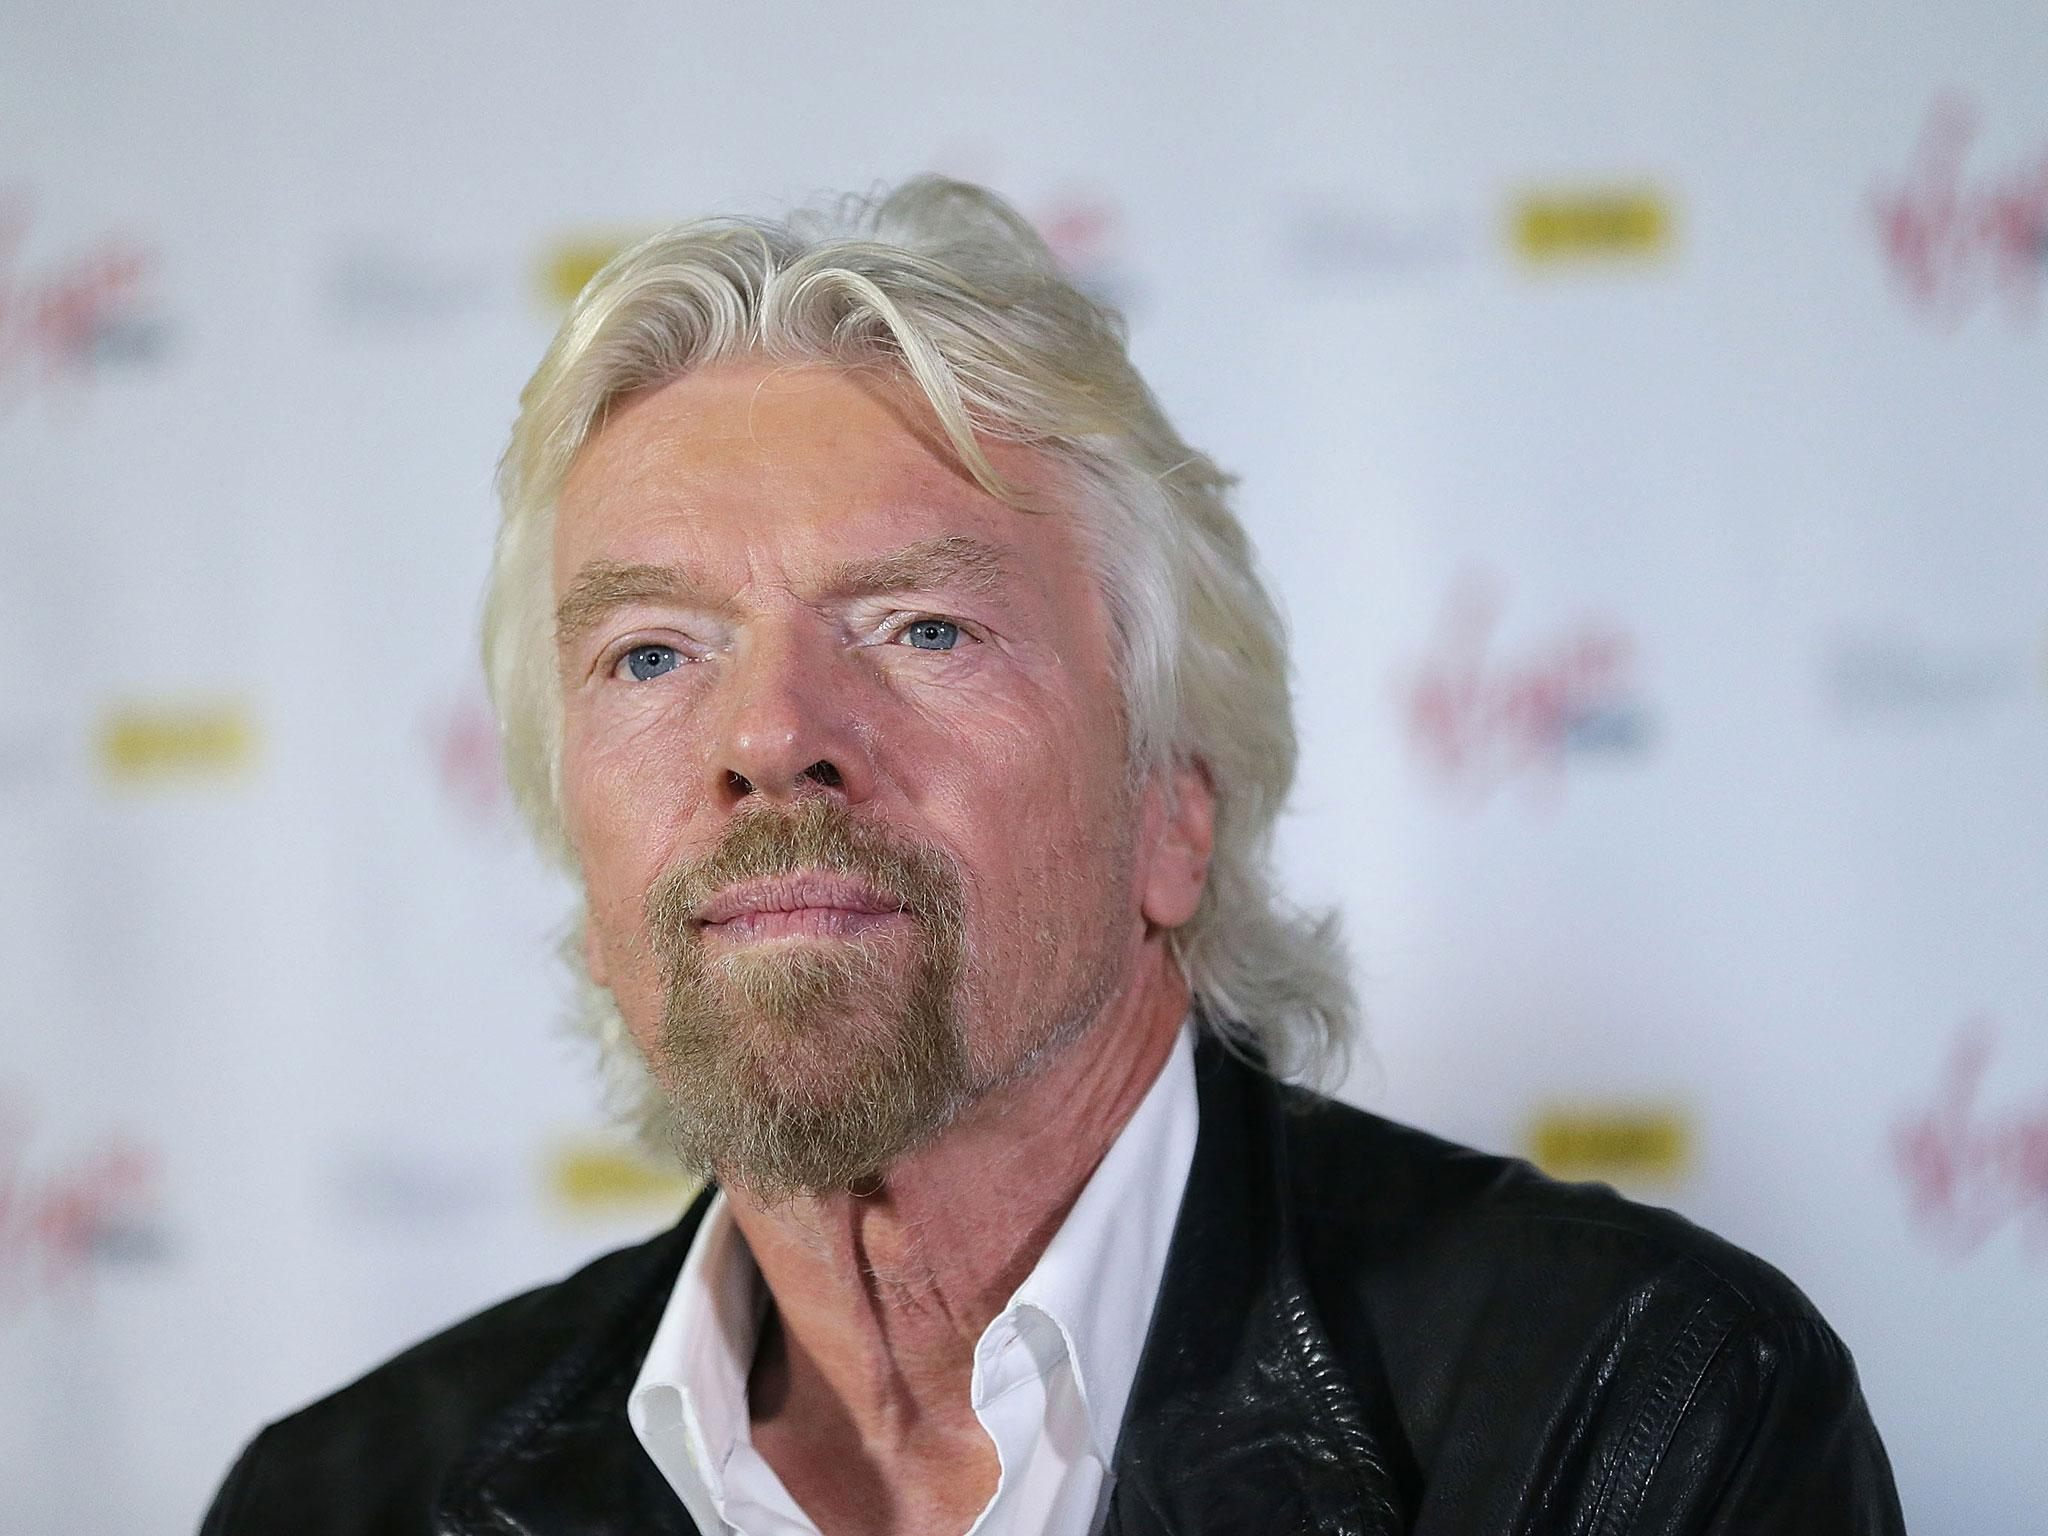 Richard Branson just overturned Virgin Trains' Daily Mail ban